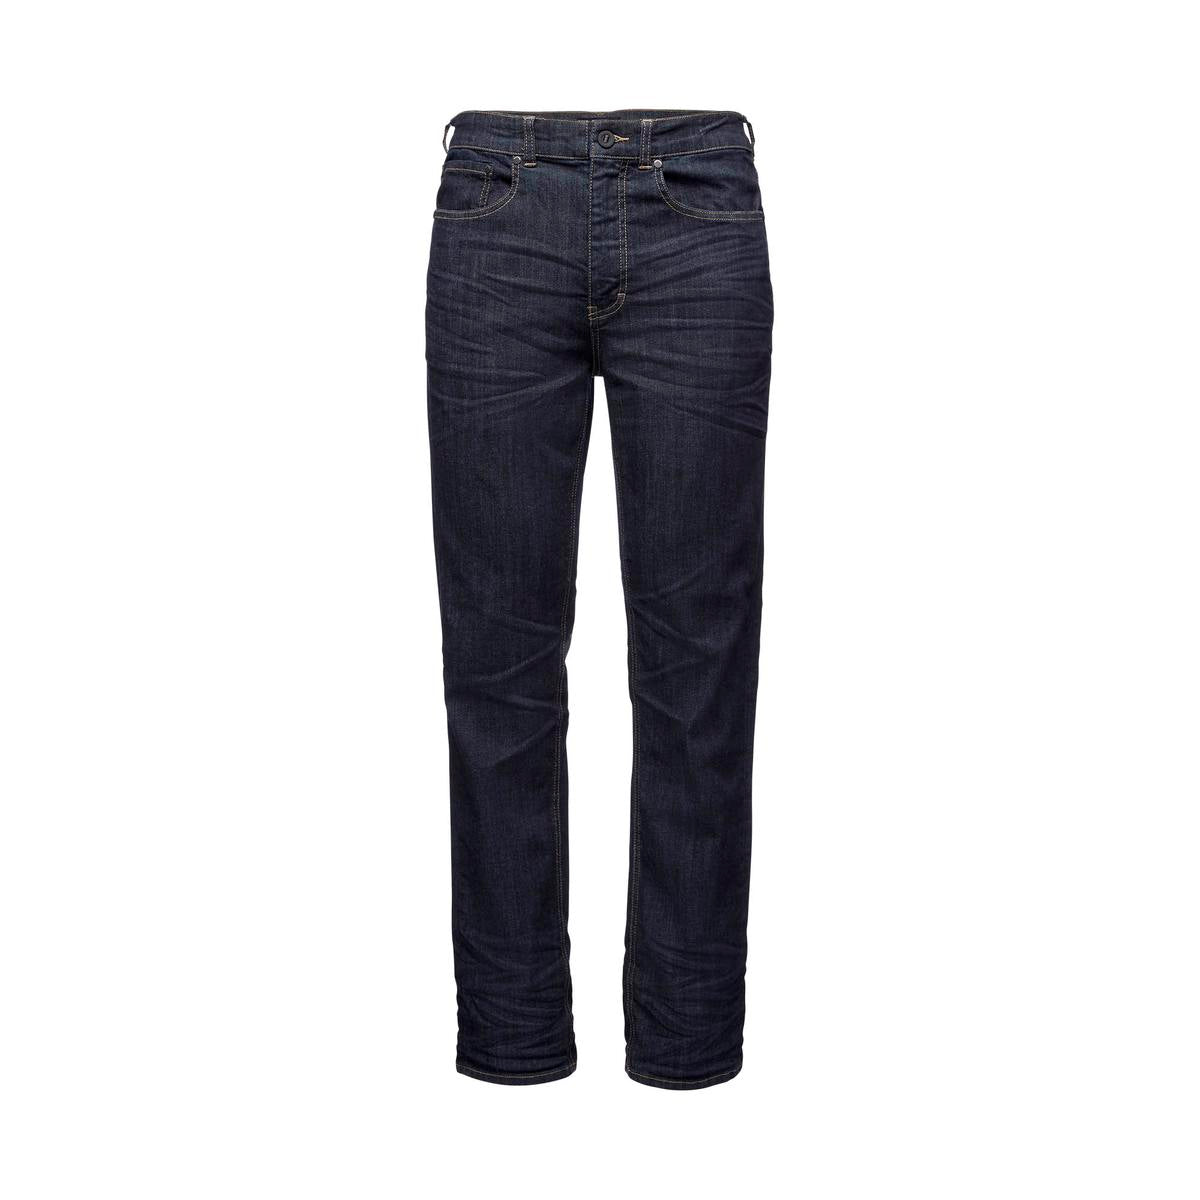 Black Diamond Forged Denim Pants Men's